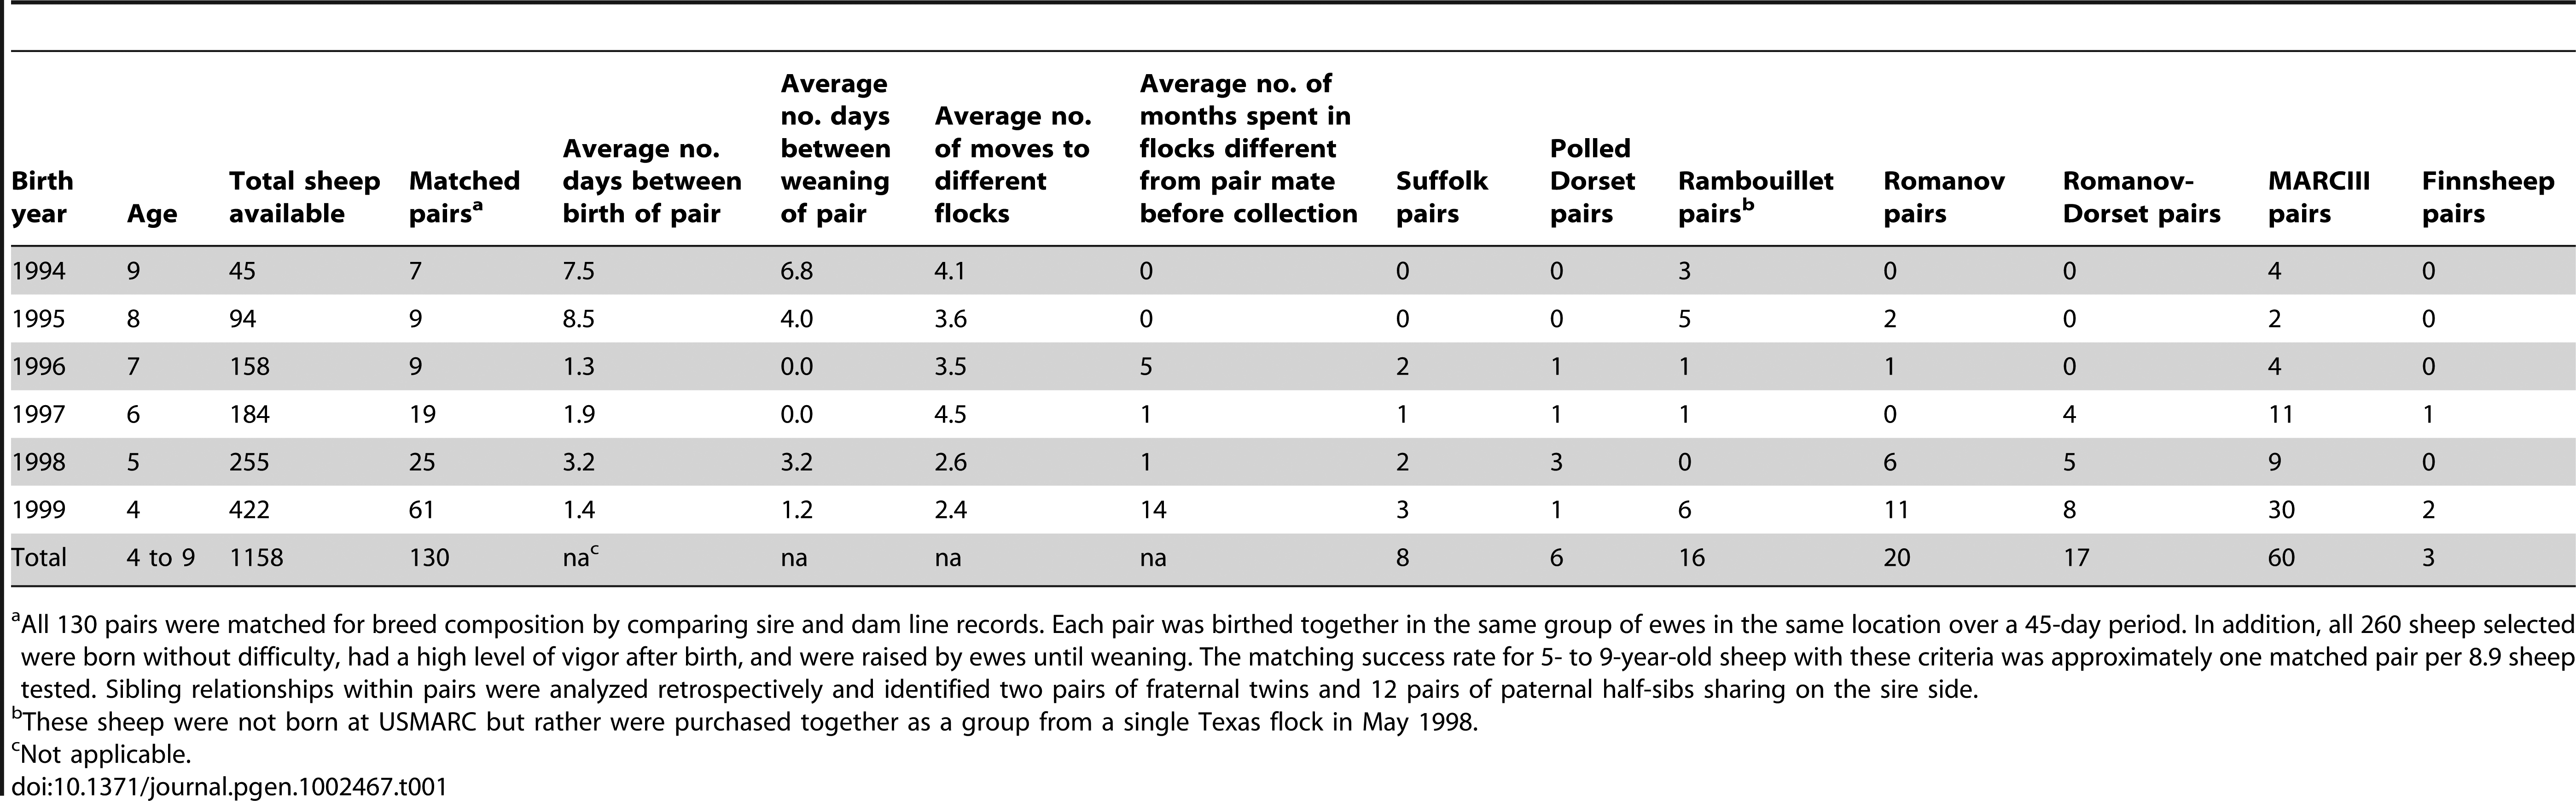 Historical attributes of matched pairs of infected and uninfected ewes.